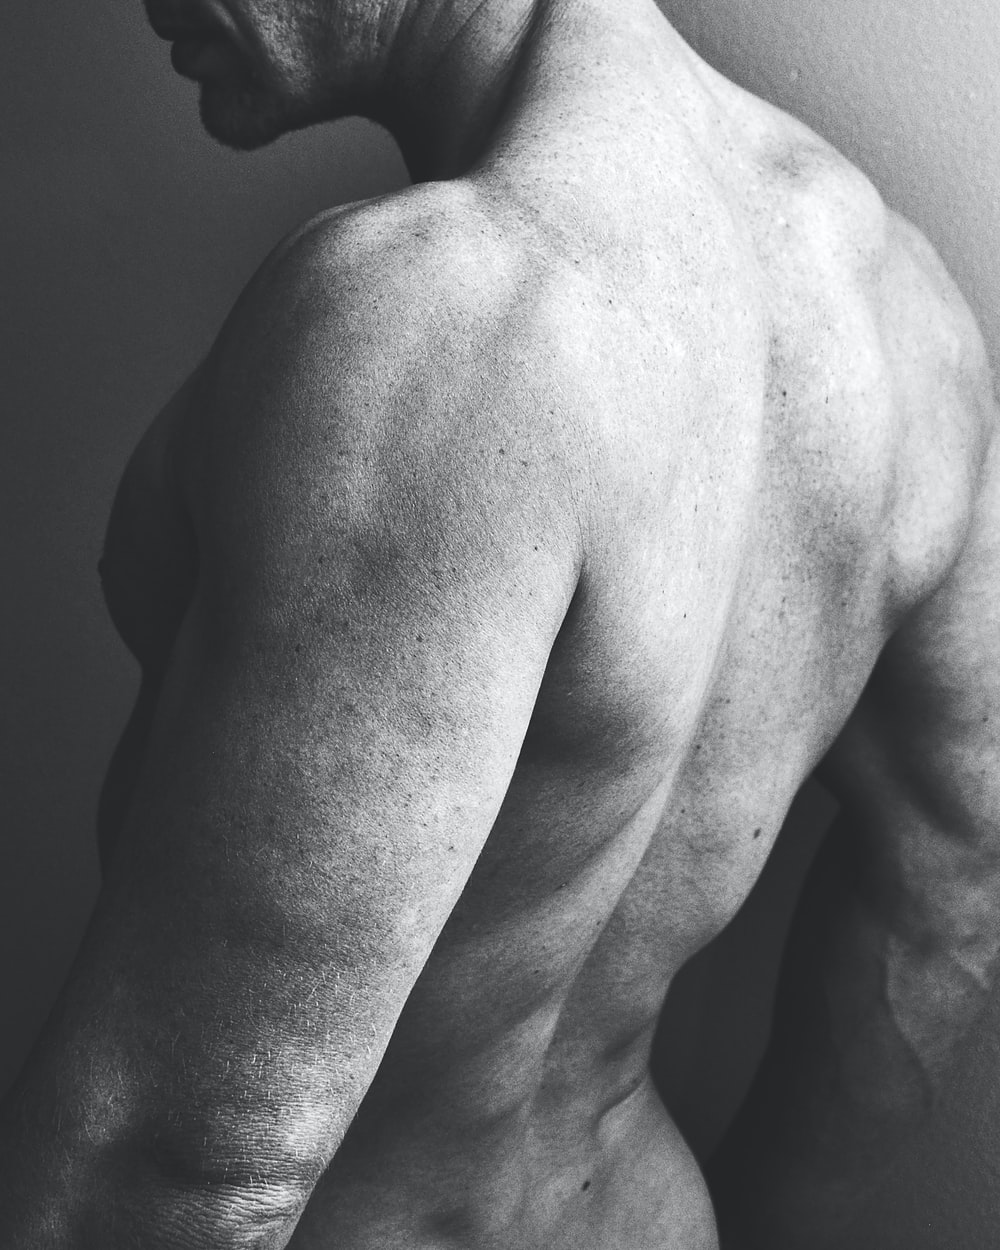 grayscale photo of naked man